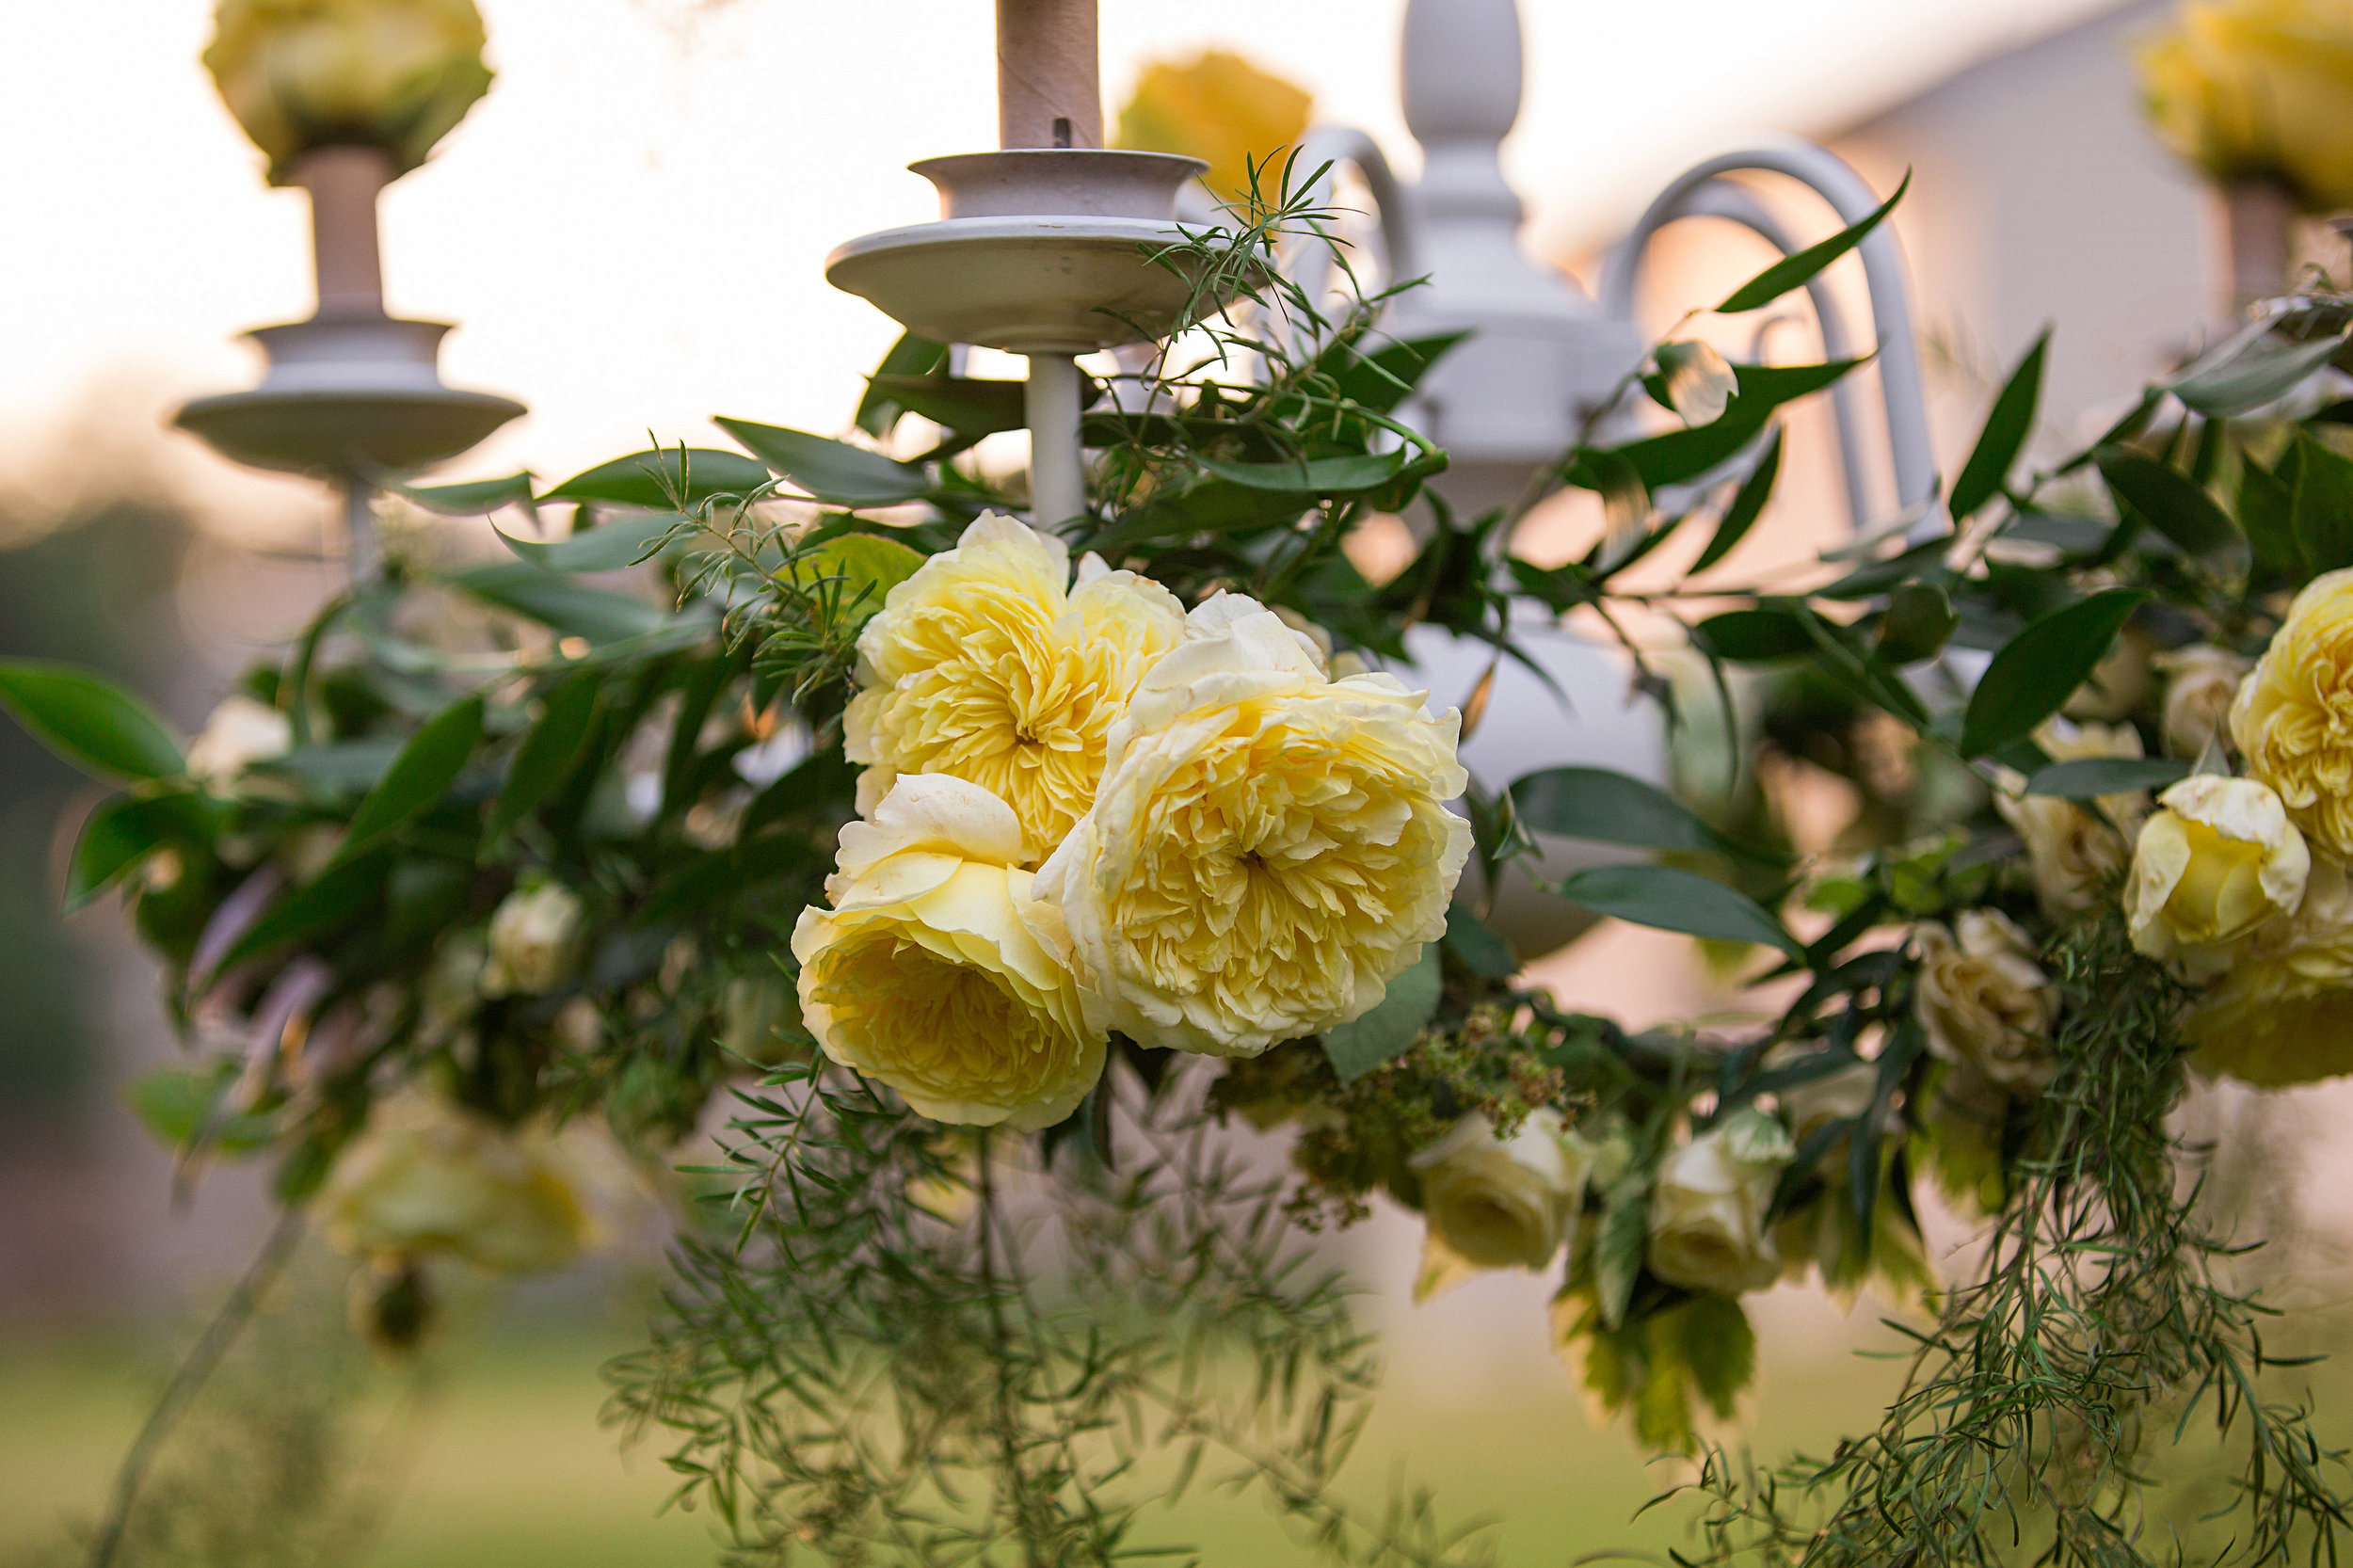 Heather Cisler Photography , Floral Design:  The Day's Design